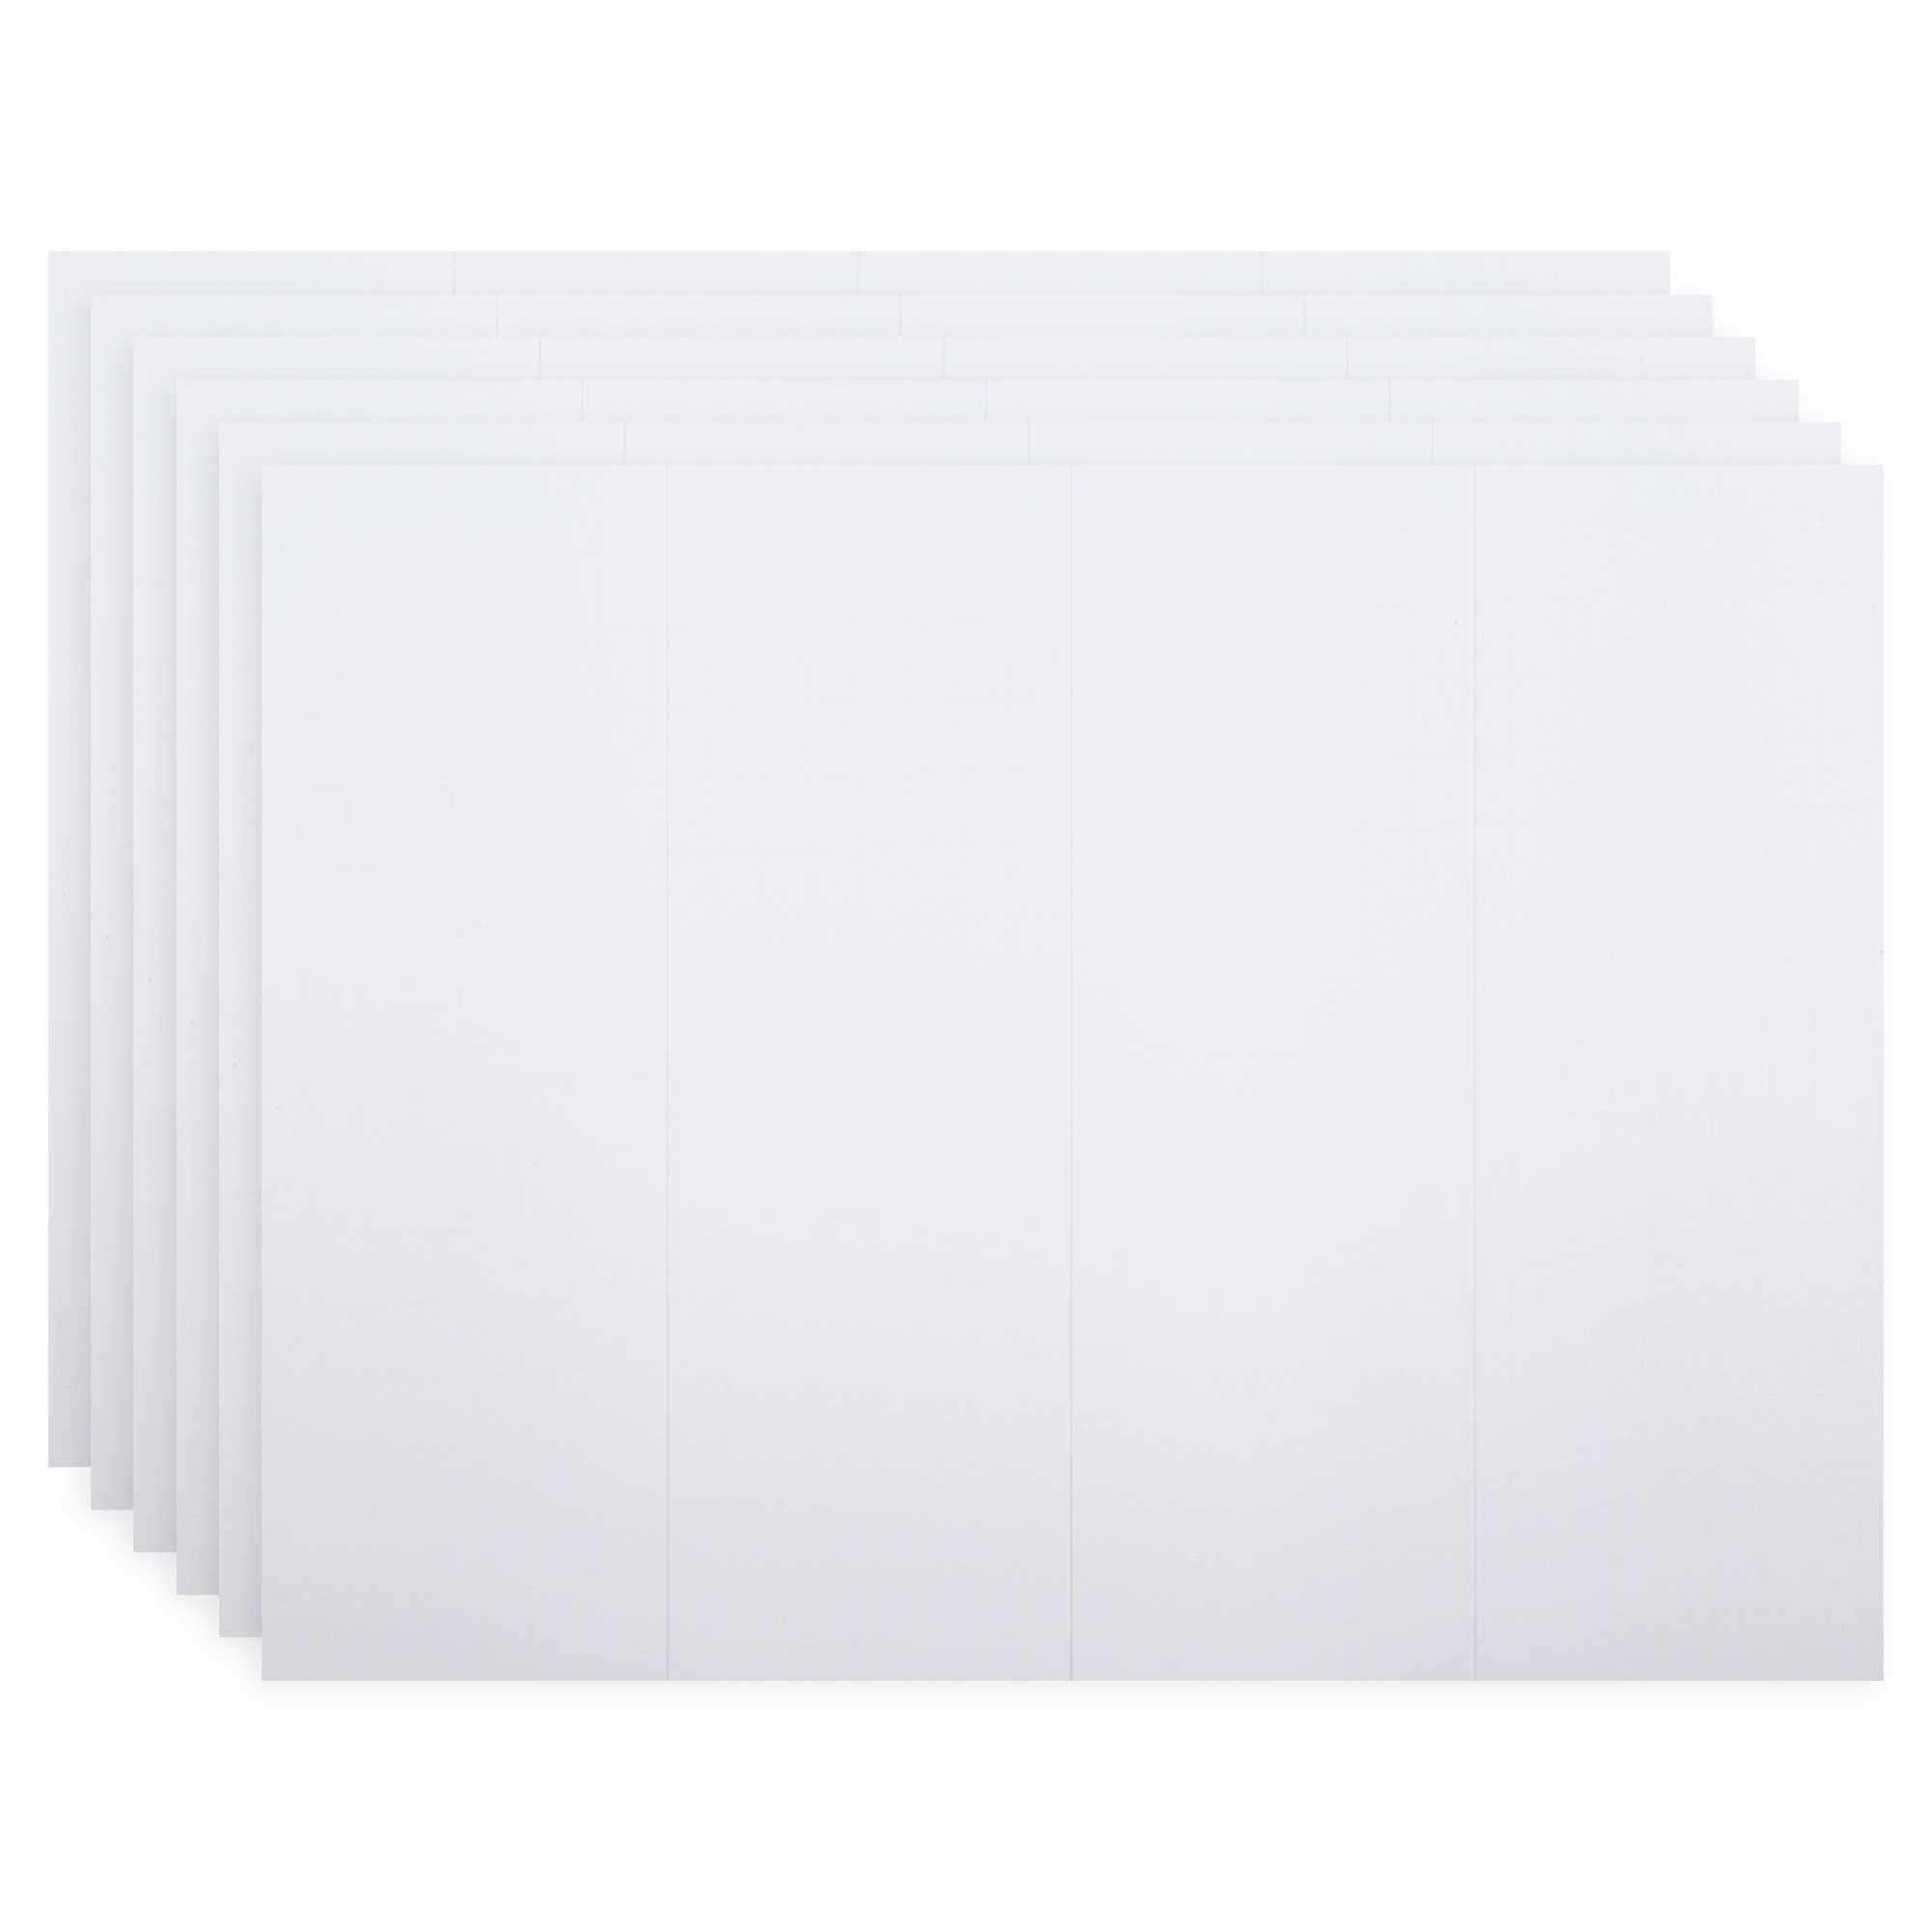 CTG, Office Works Collection, Quad Fold Foam Presentation Boards, 36 x 48 inches, White, 6 Pieces